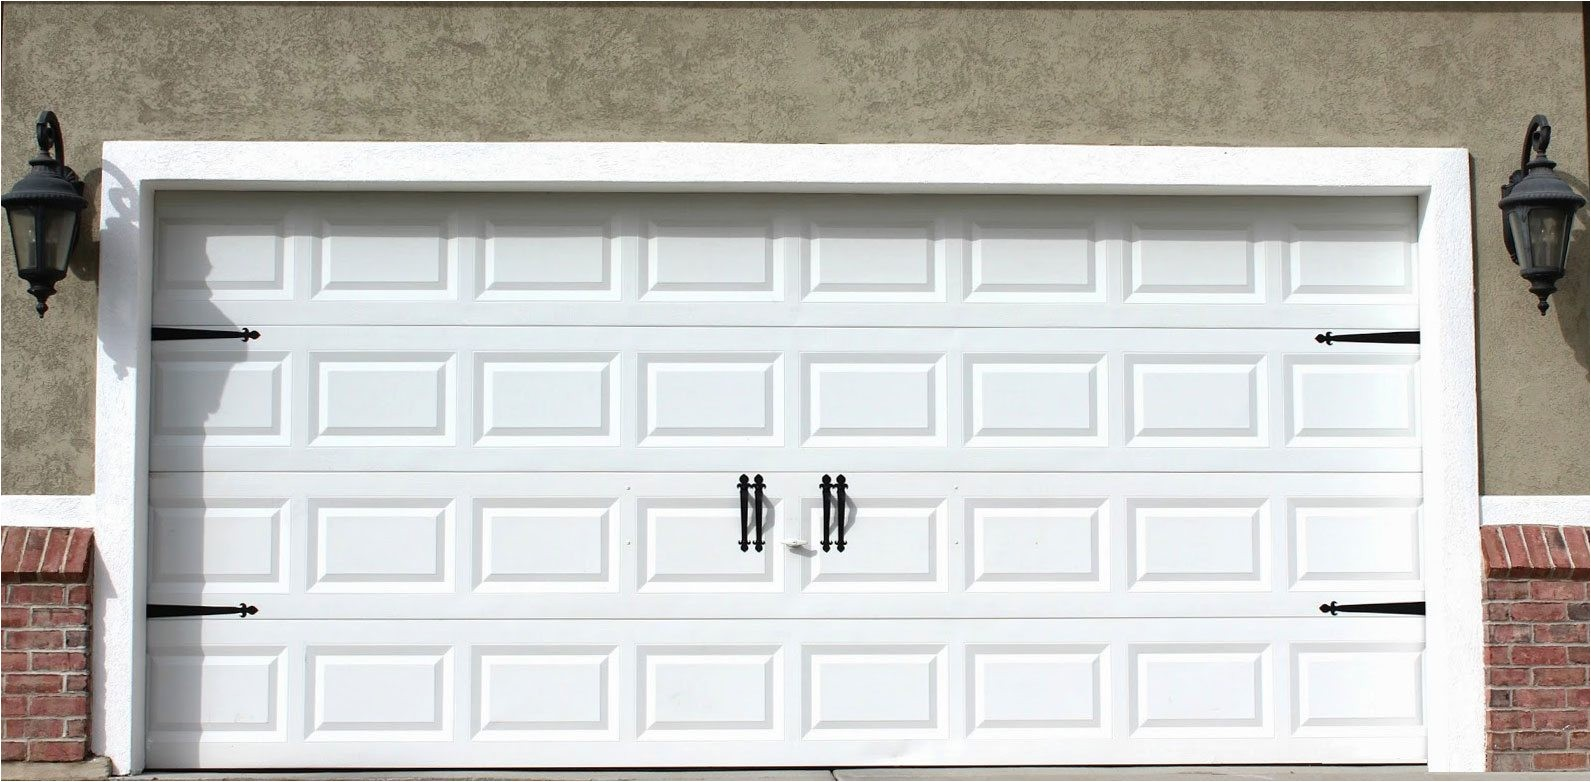 axcess overhead garage doors logo check out more on axcess